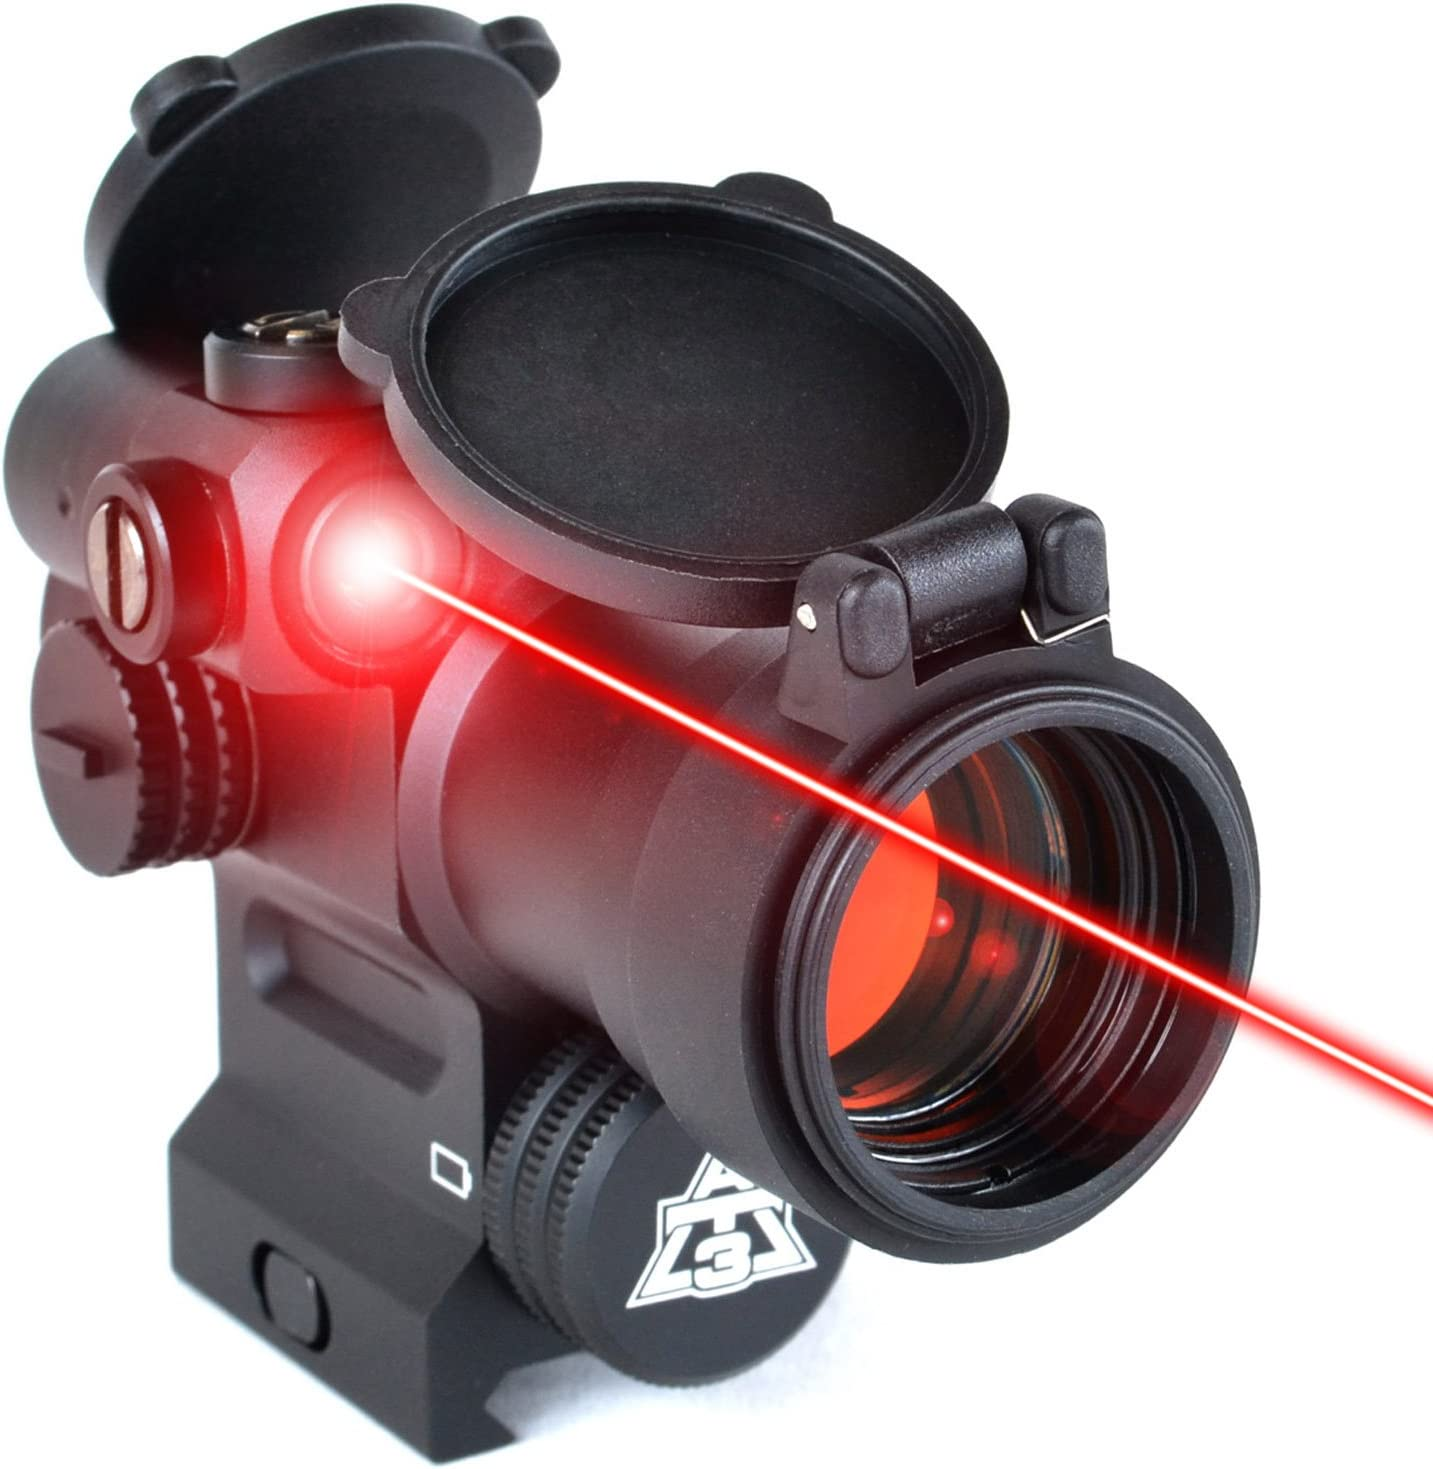 Top 10 Best Red Dot Sight Reviews in 2020 & Buying Guide 9